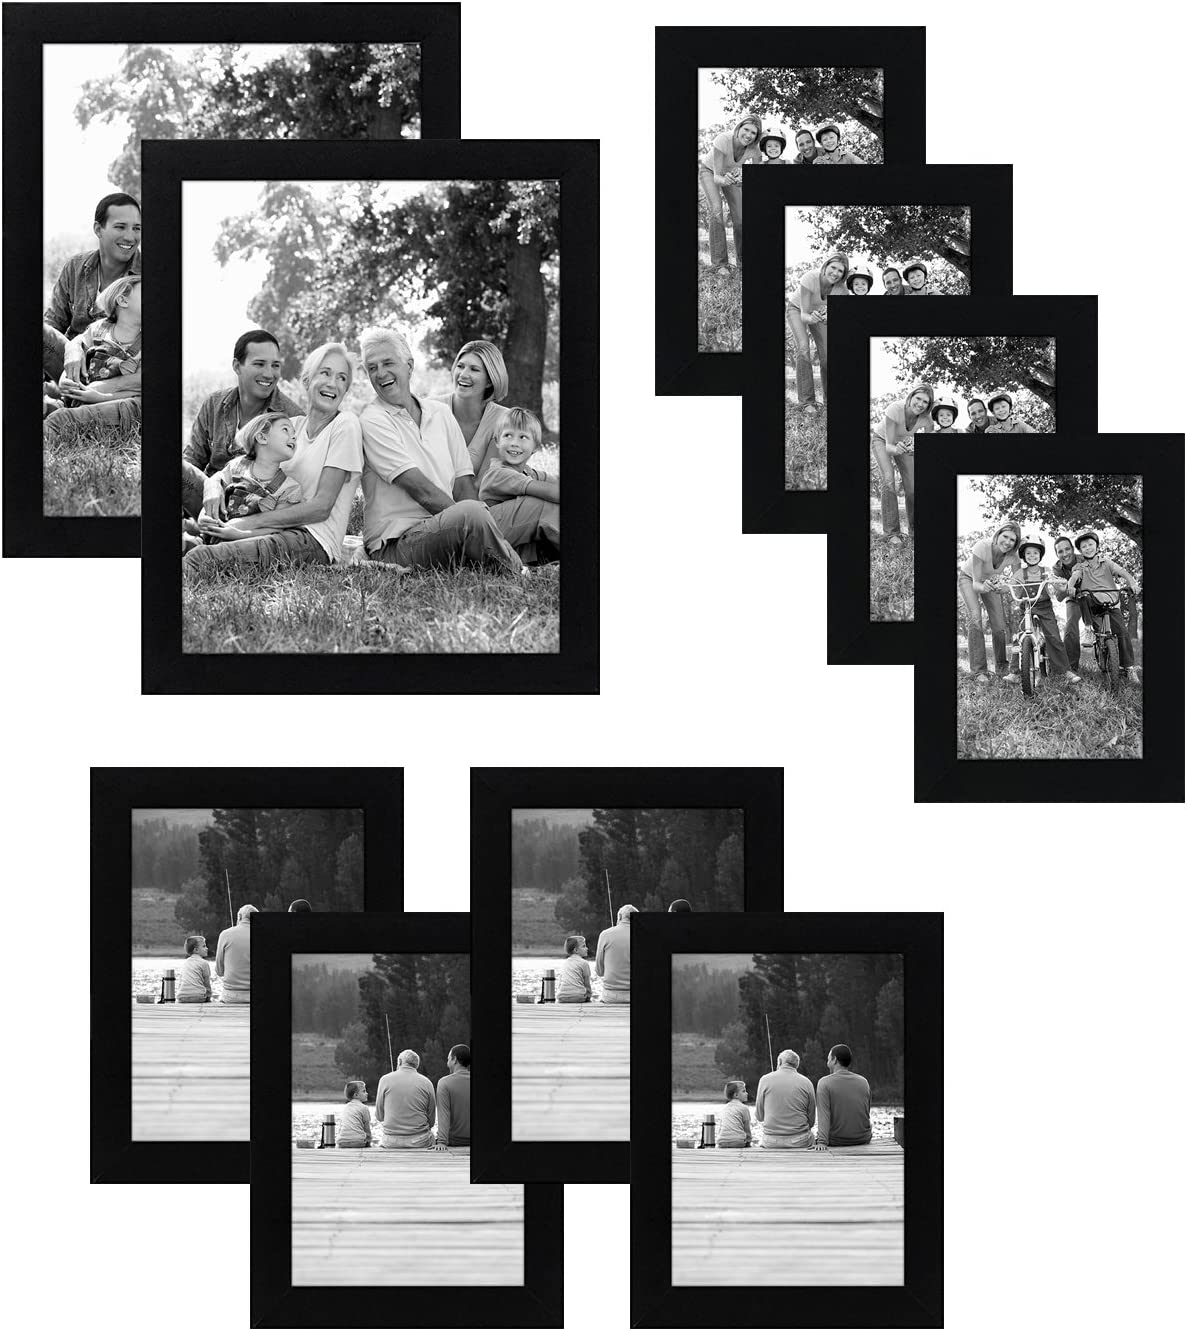 Amazon Com Americanflat 10 Piece Black Picture Frame Set Includes Sizes 8x10 5x7 And 4x6 Shatter Resistant Glass Hanging Hardware Included Home Kitchen